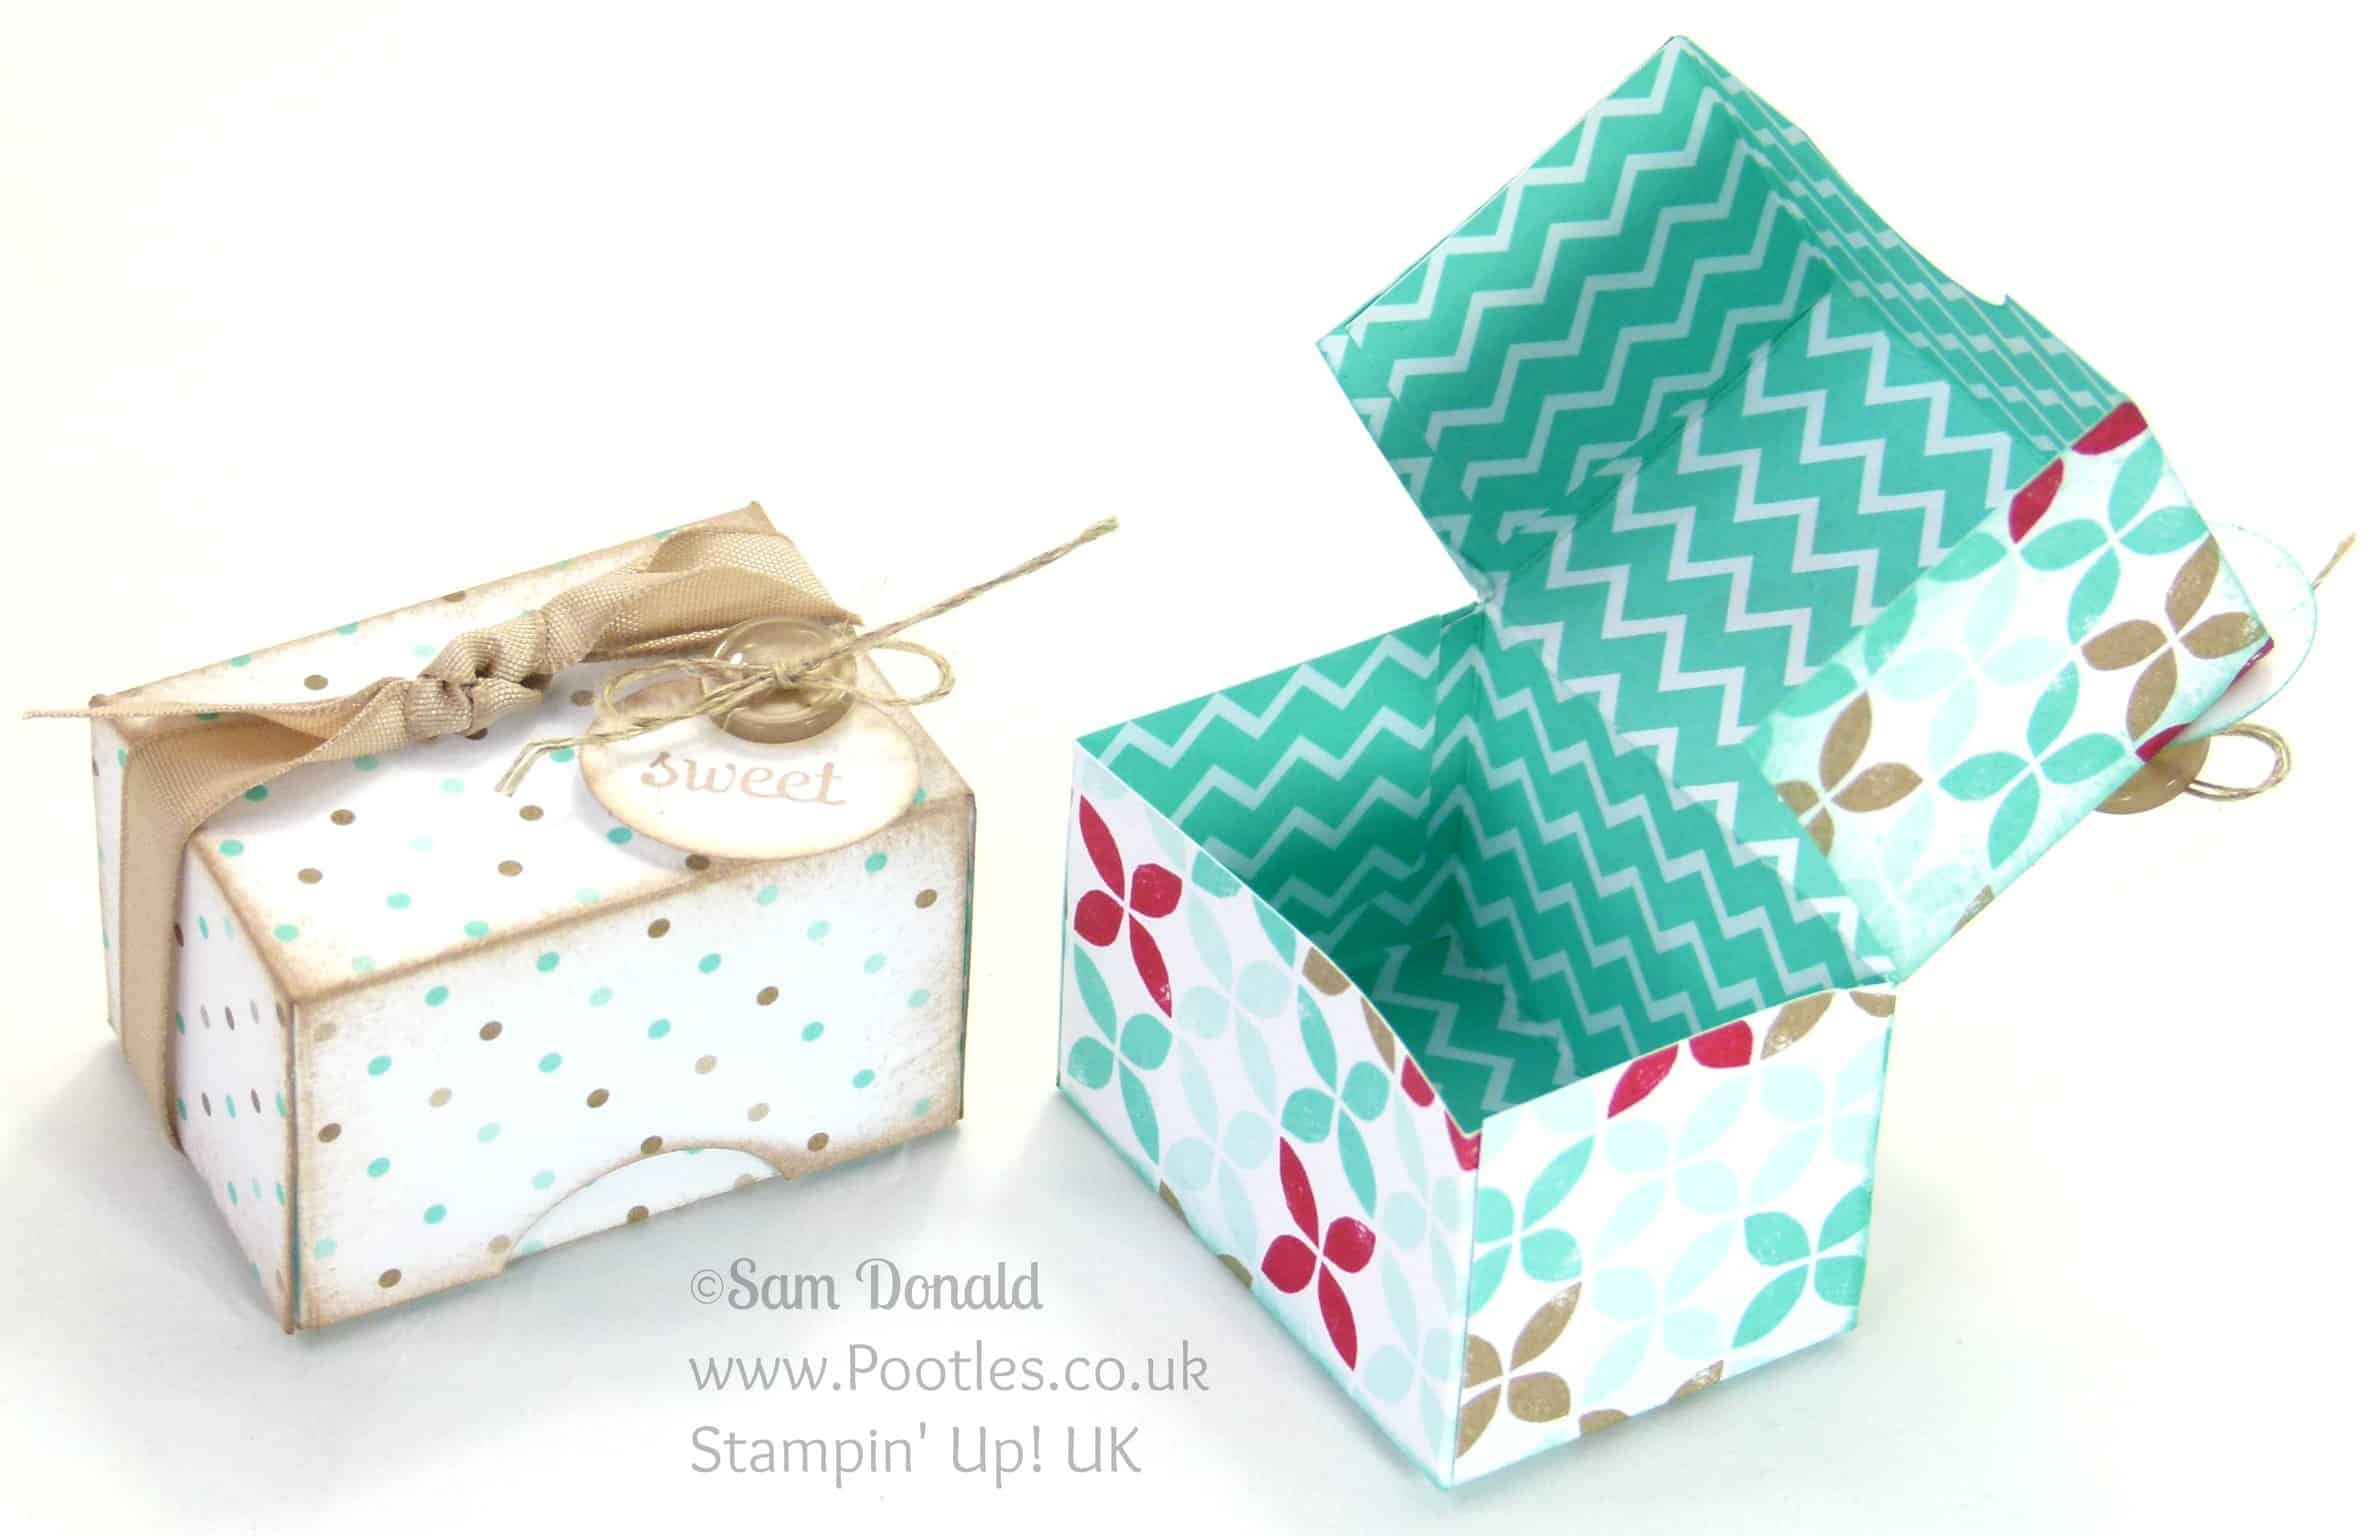 Adorable mini box tutorial pootles stampin up uk adorable mini box tutorial solutioingenieria Gallery